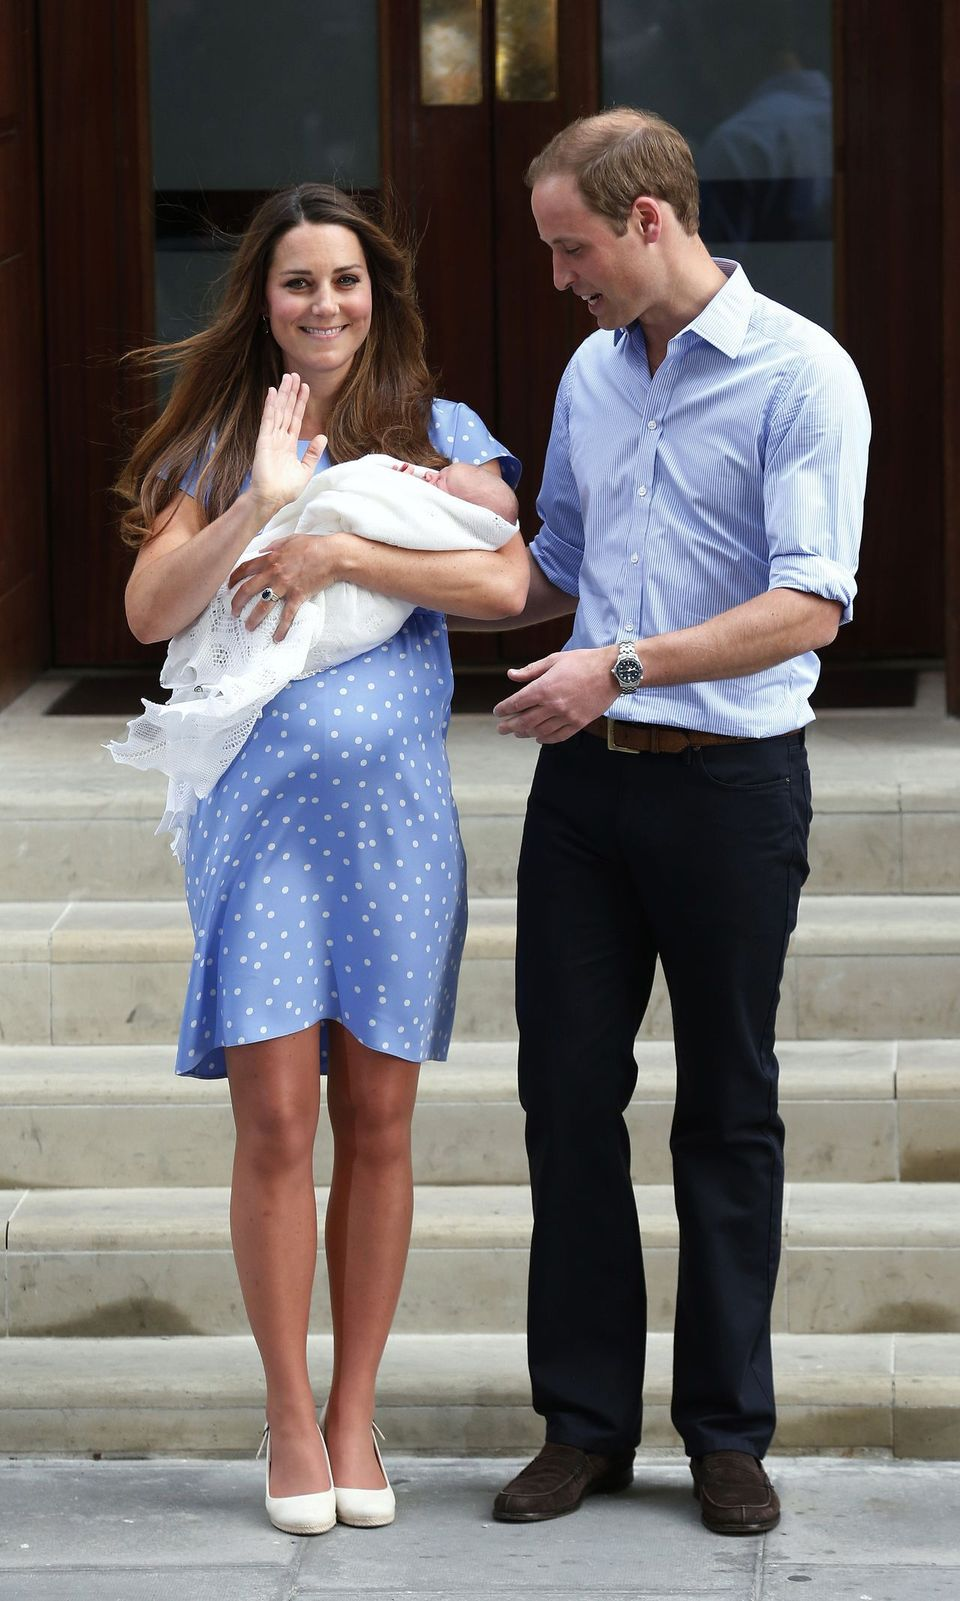 File photograph of Britain's Prince William and his wife Catherine, Duchess of Cambridge with their baby son, outside the Lindo Wing of St Mary's Hospital, in central London